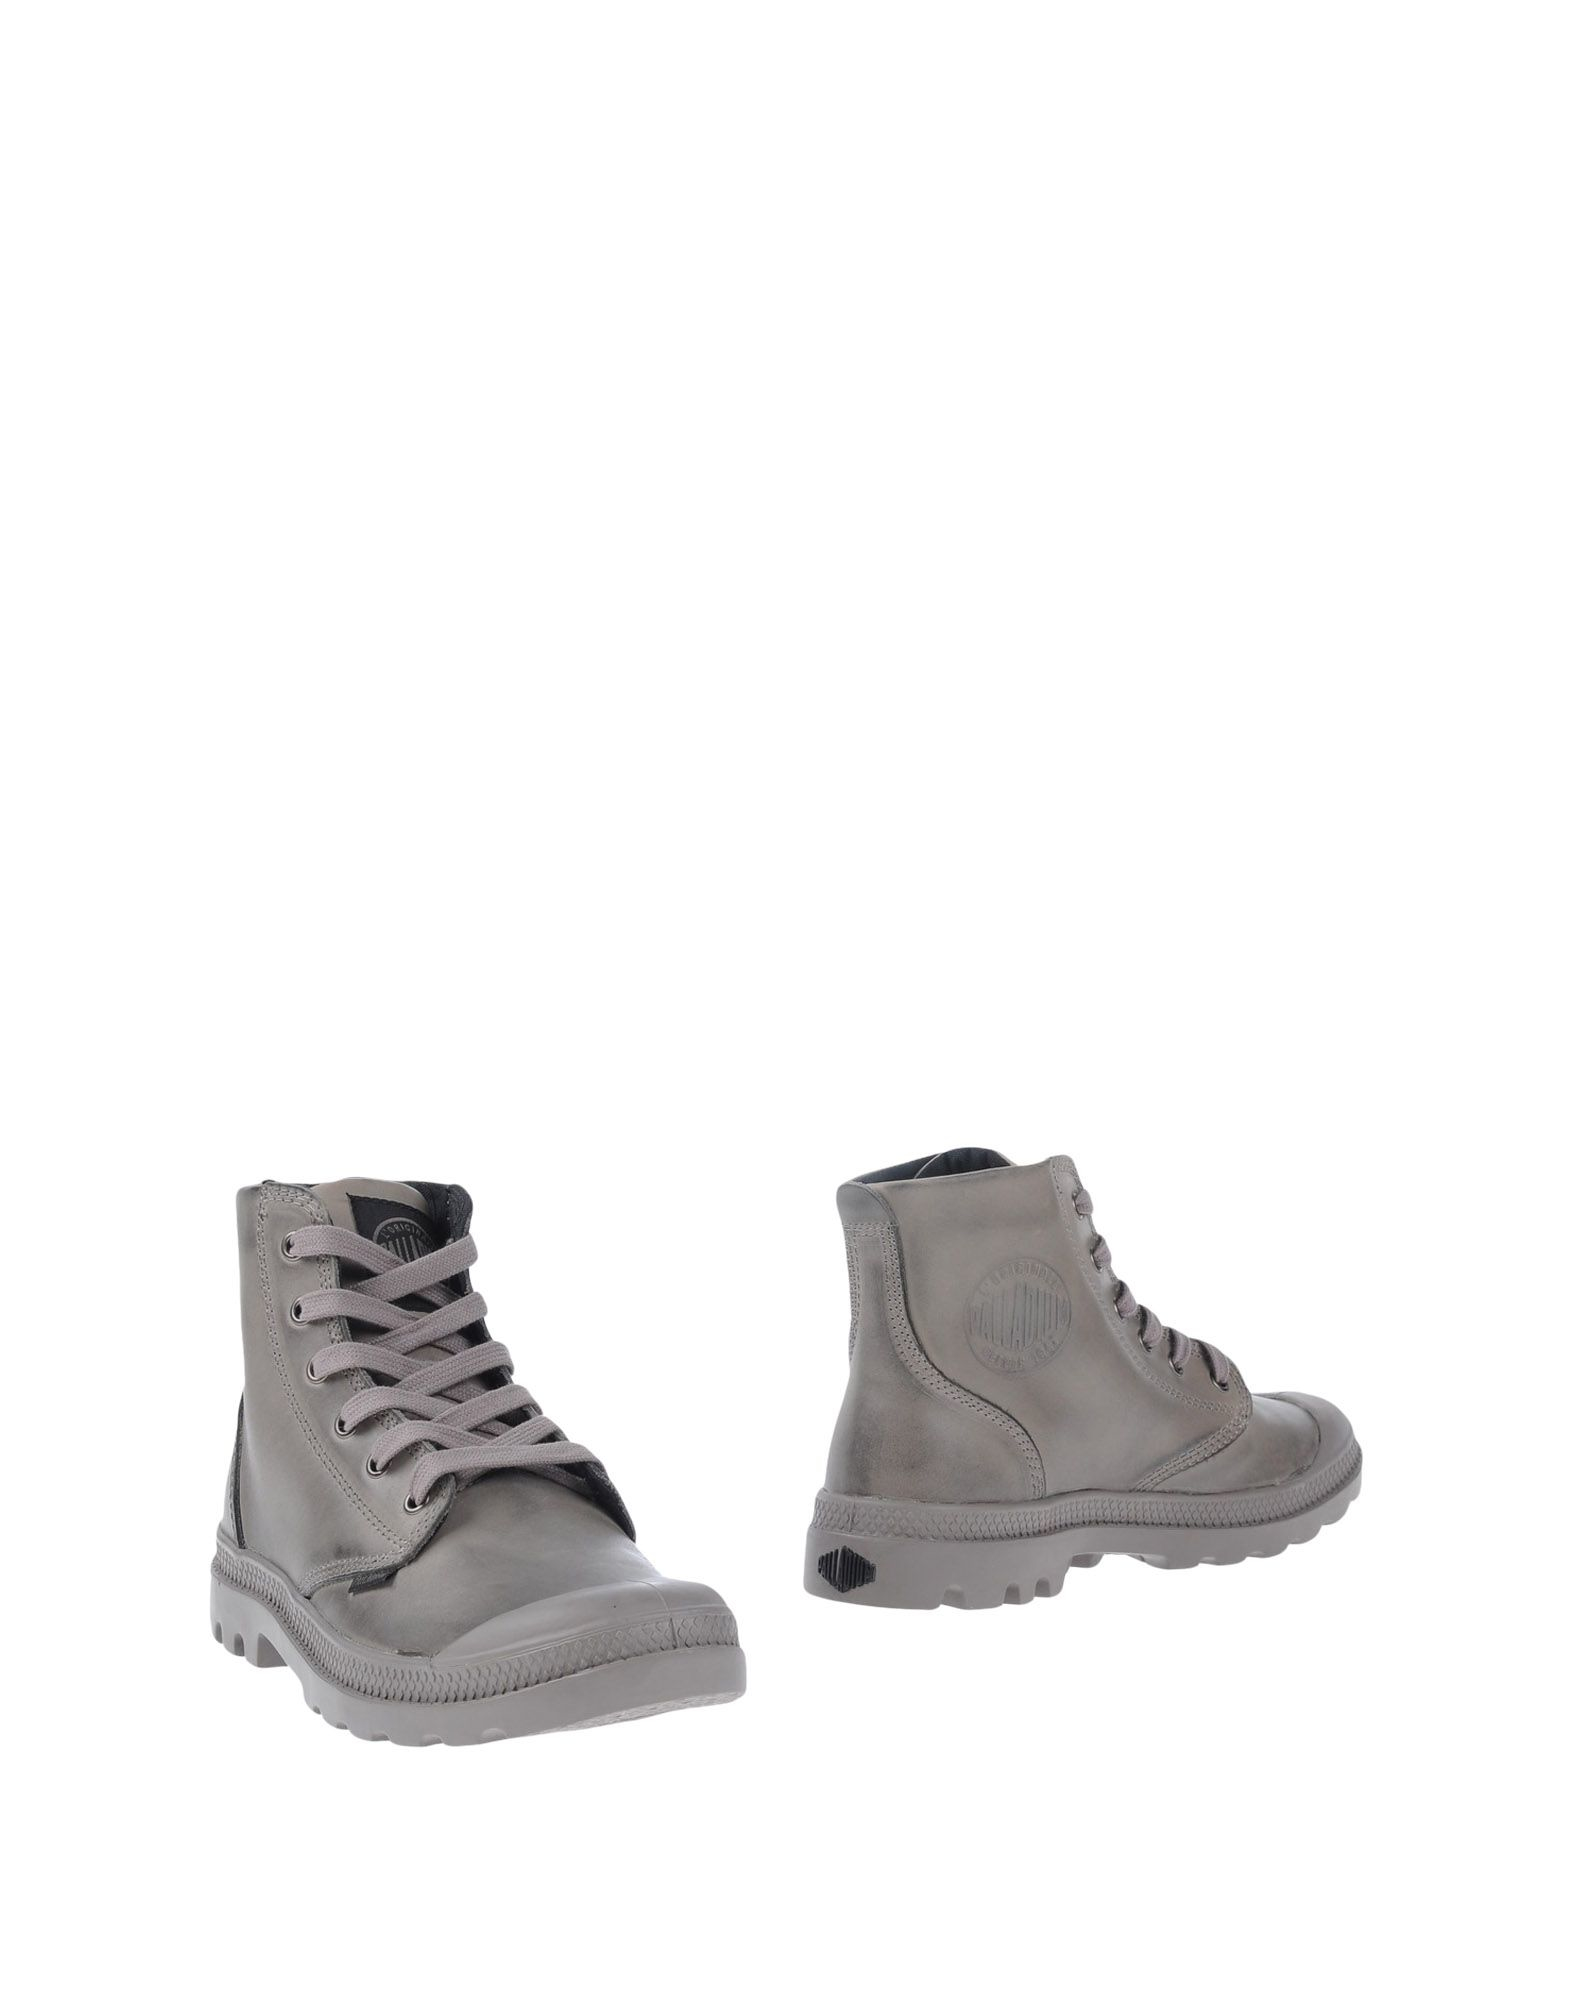 Brilliant  Outfitters Palladium Pampa Sport Cuff Boots In Grey In Gray Grey